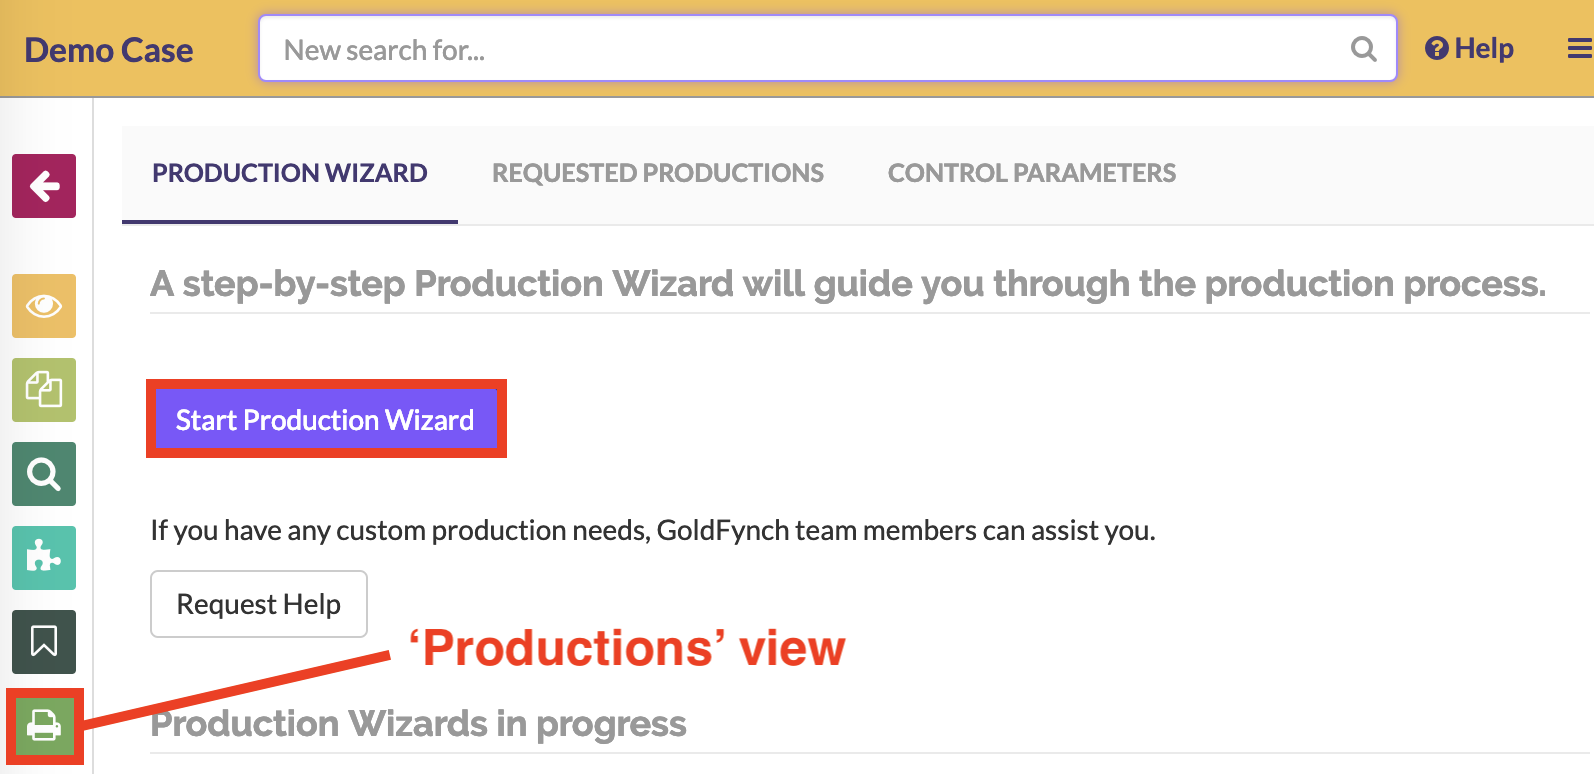 Go to the production view and click on the Start Production Wizard button